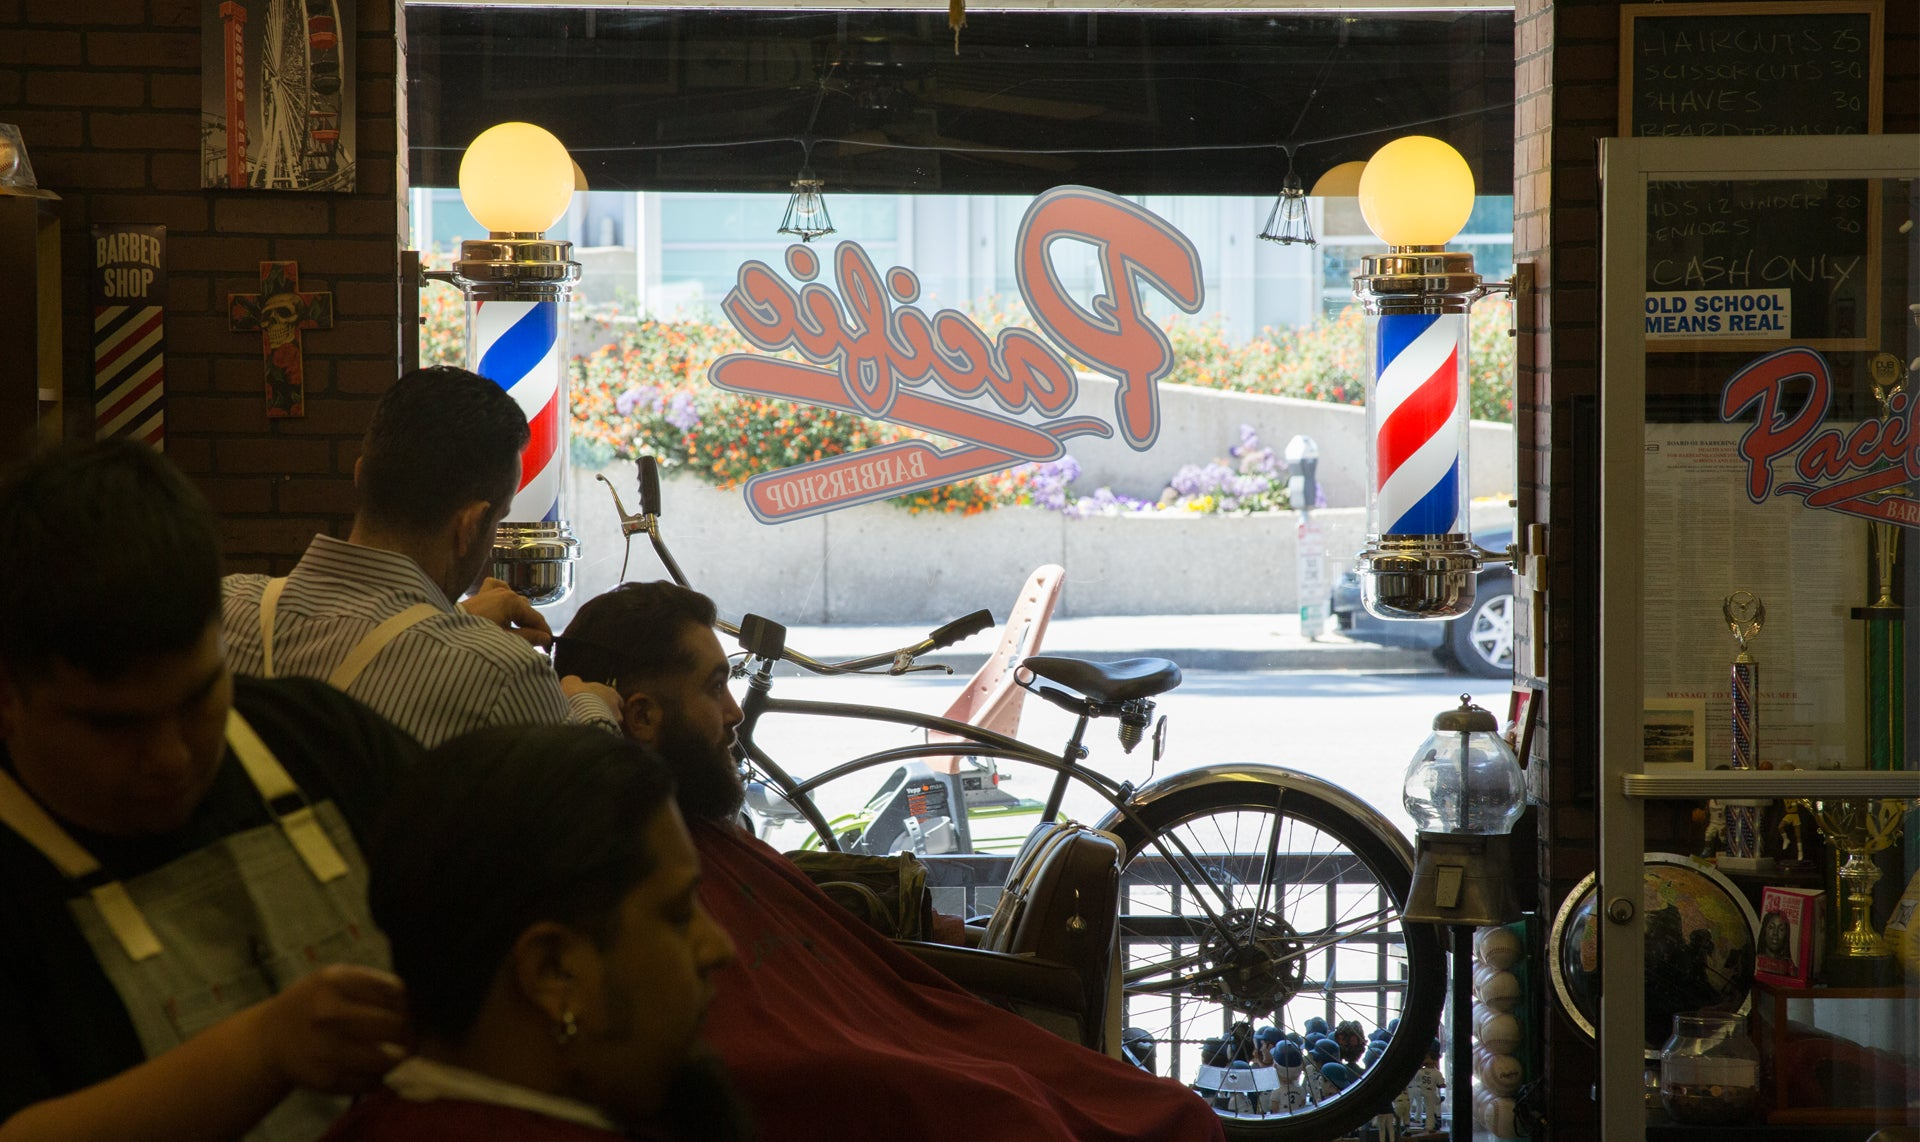 Haircuts And Shaves at Pacific Barbershop